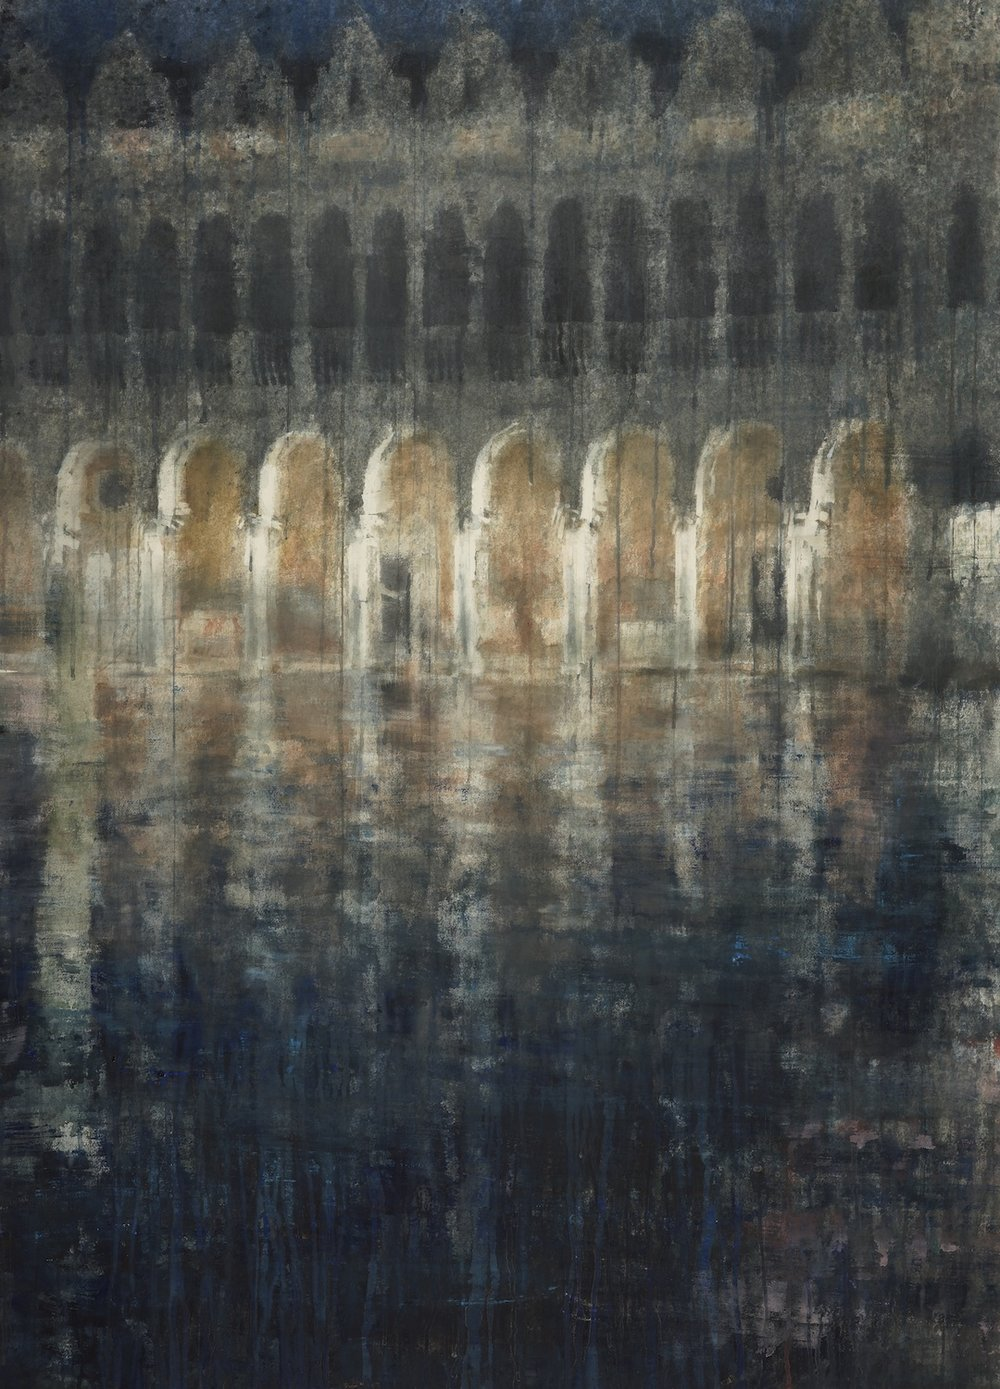 Venice III, 62x45 inches, (Private Collection)